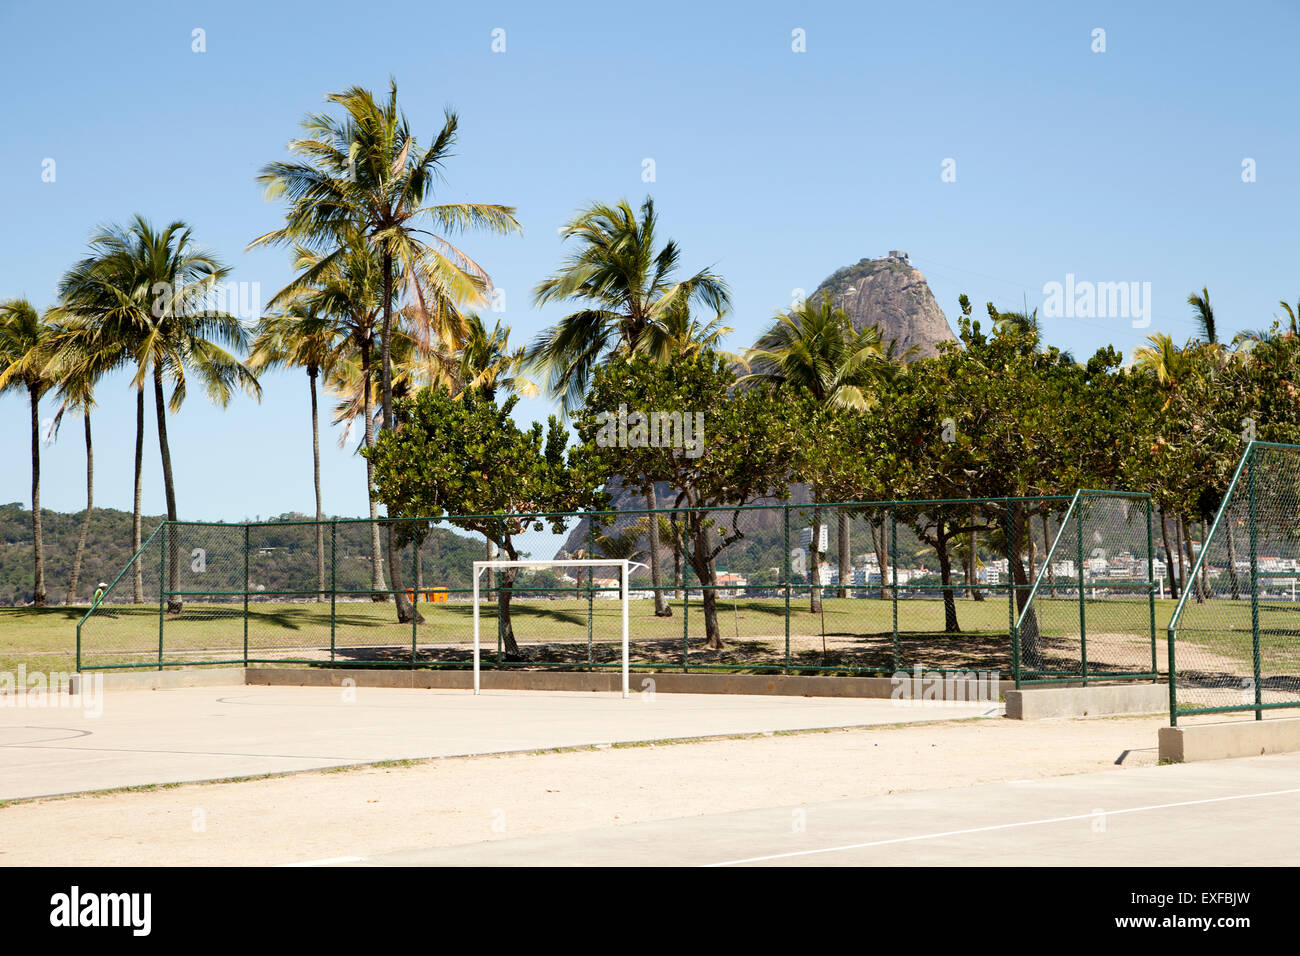 Empty basketball and soccer court in front of Sugarloaf mountain, Rio De Janeiro, Brazil - Stock Image